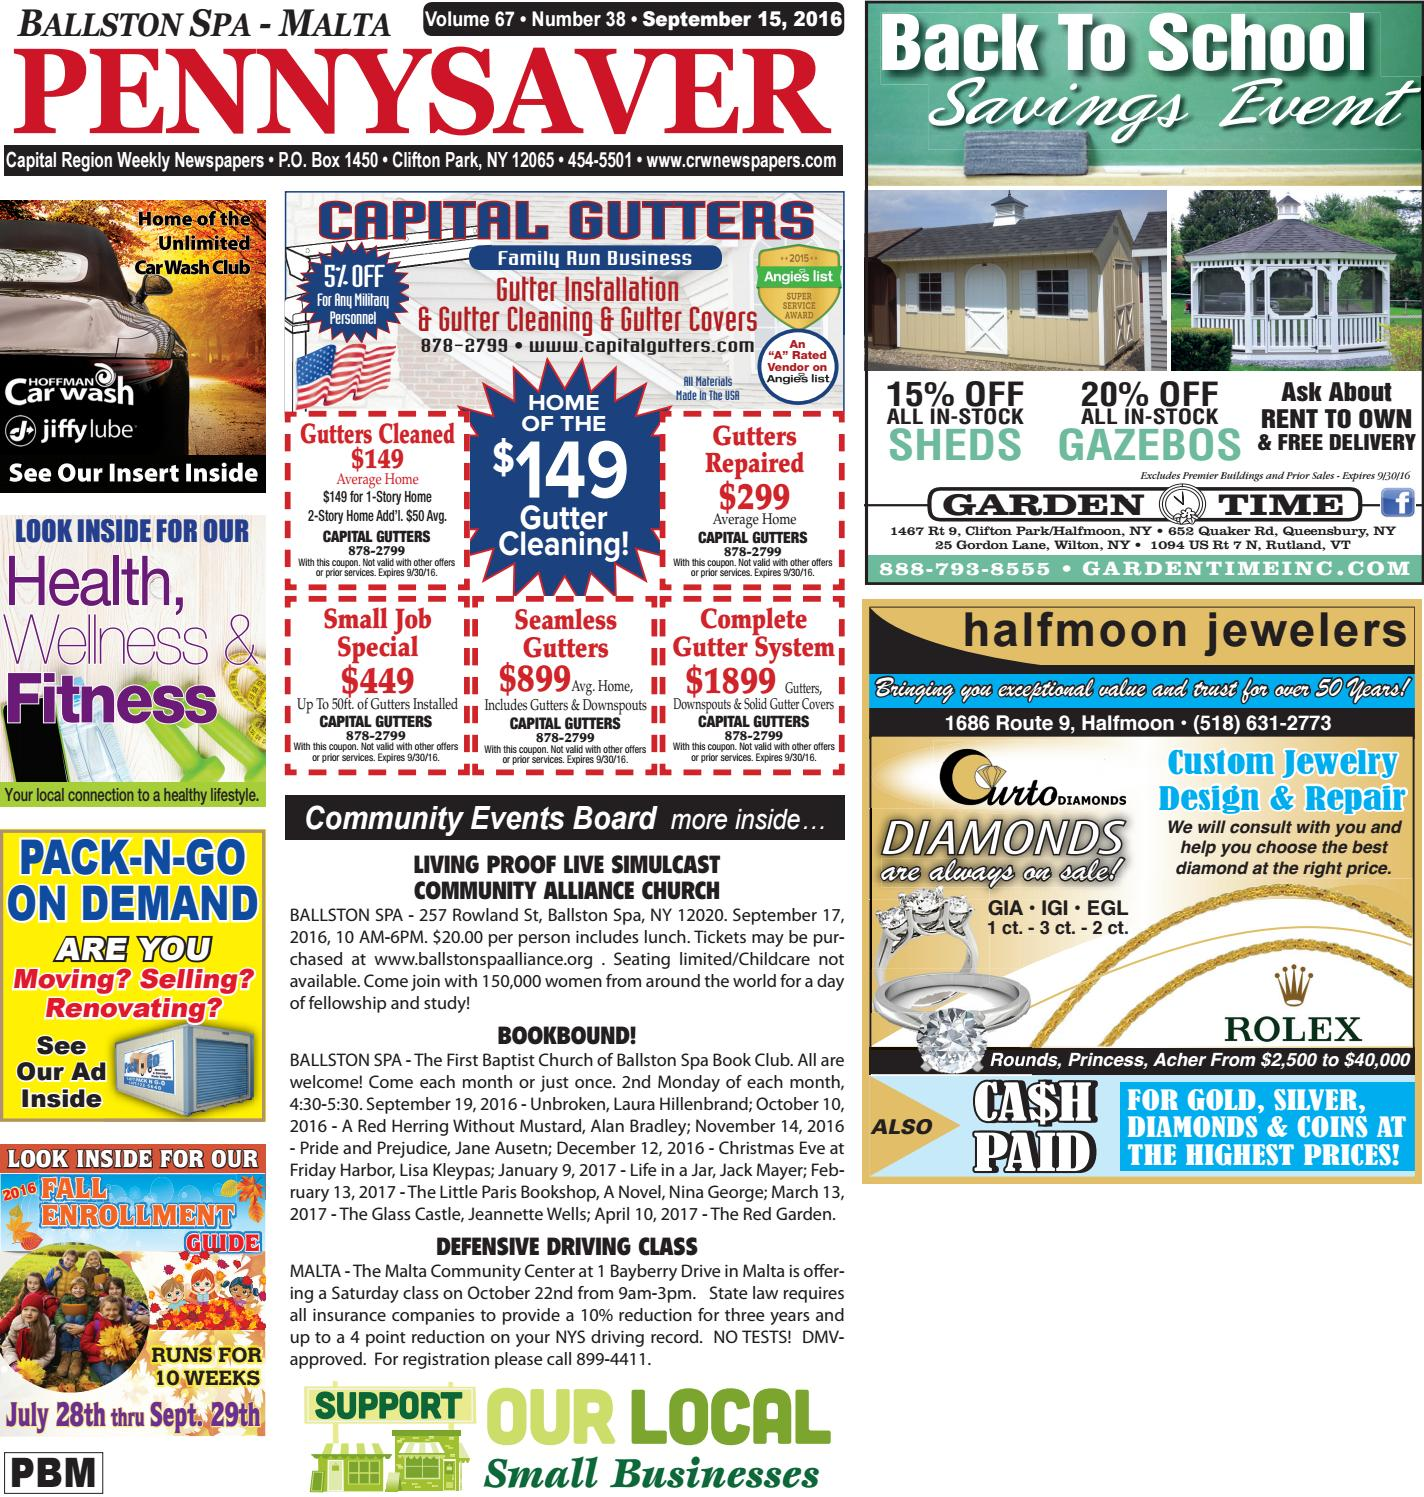 Ballston Spa Malta Pennysaver 091516 By Capital Region